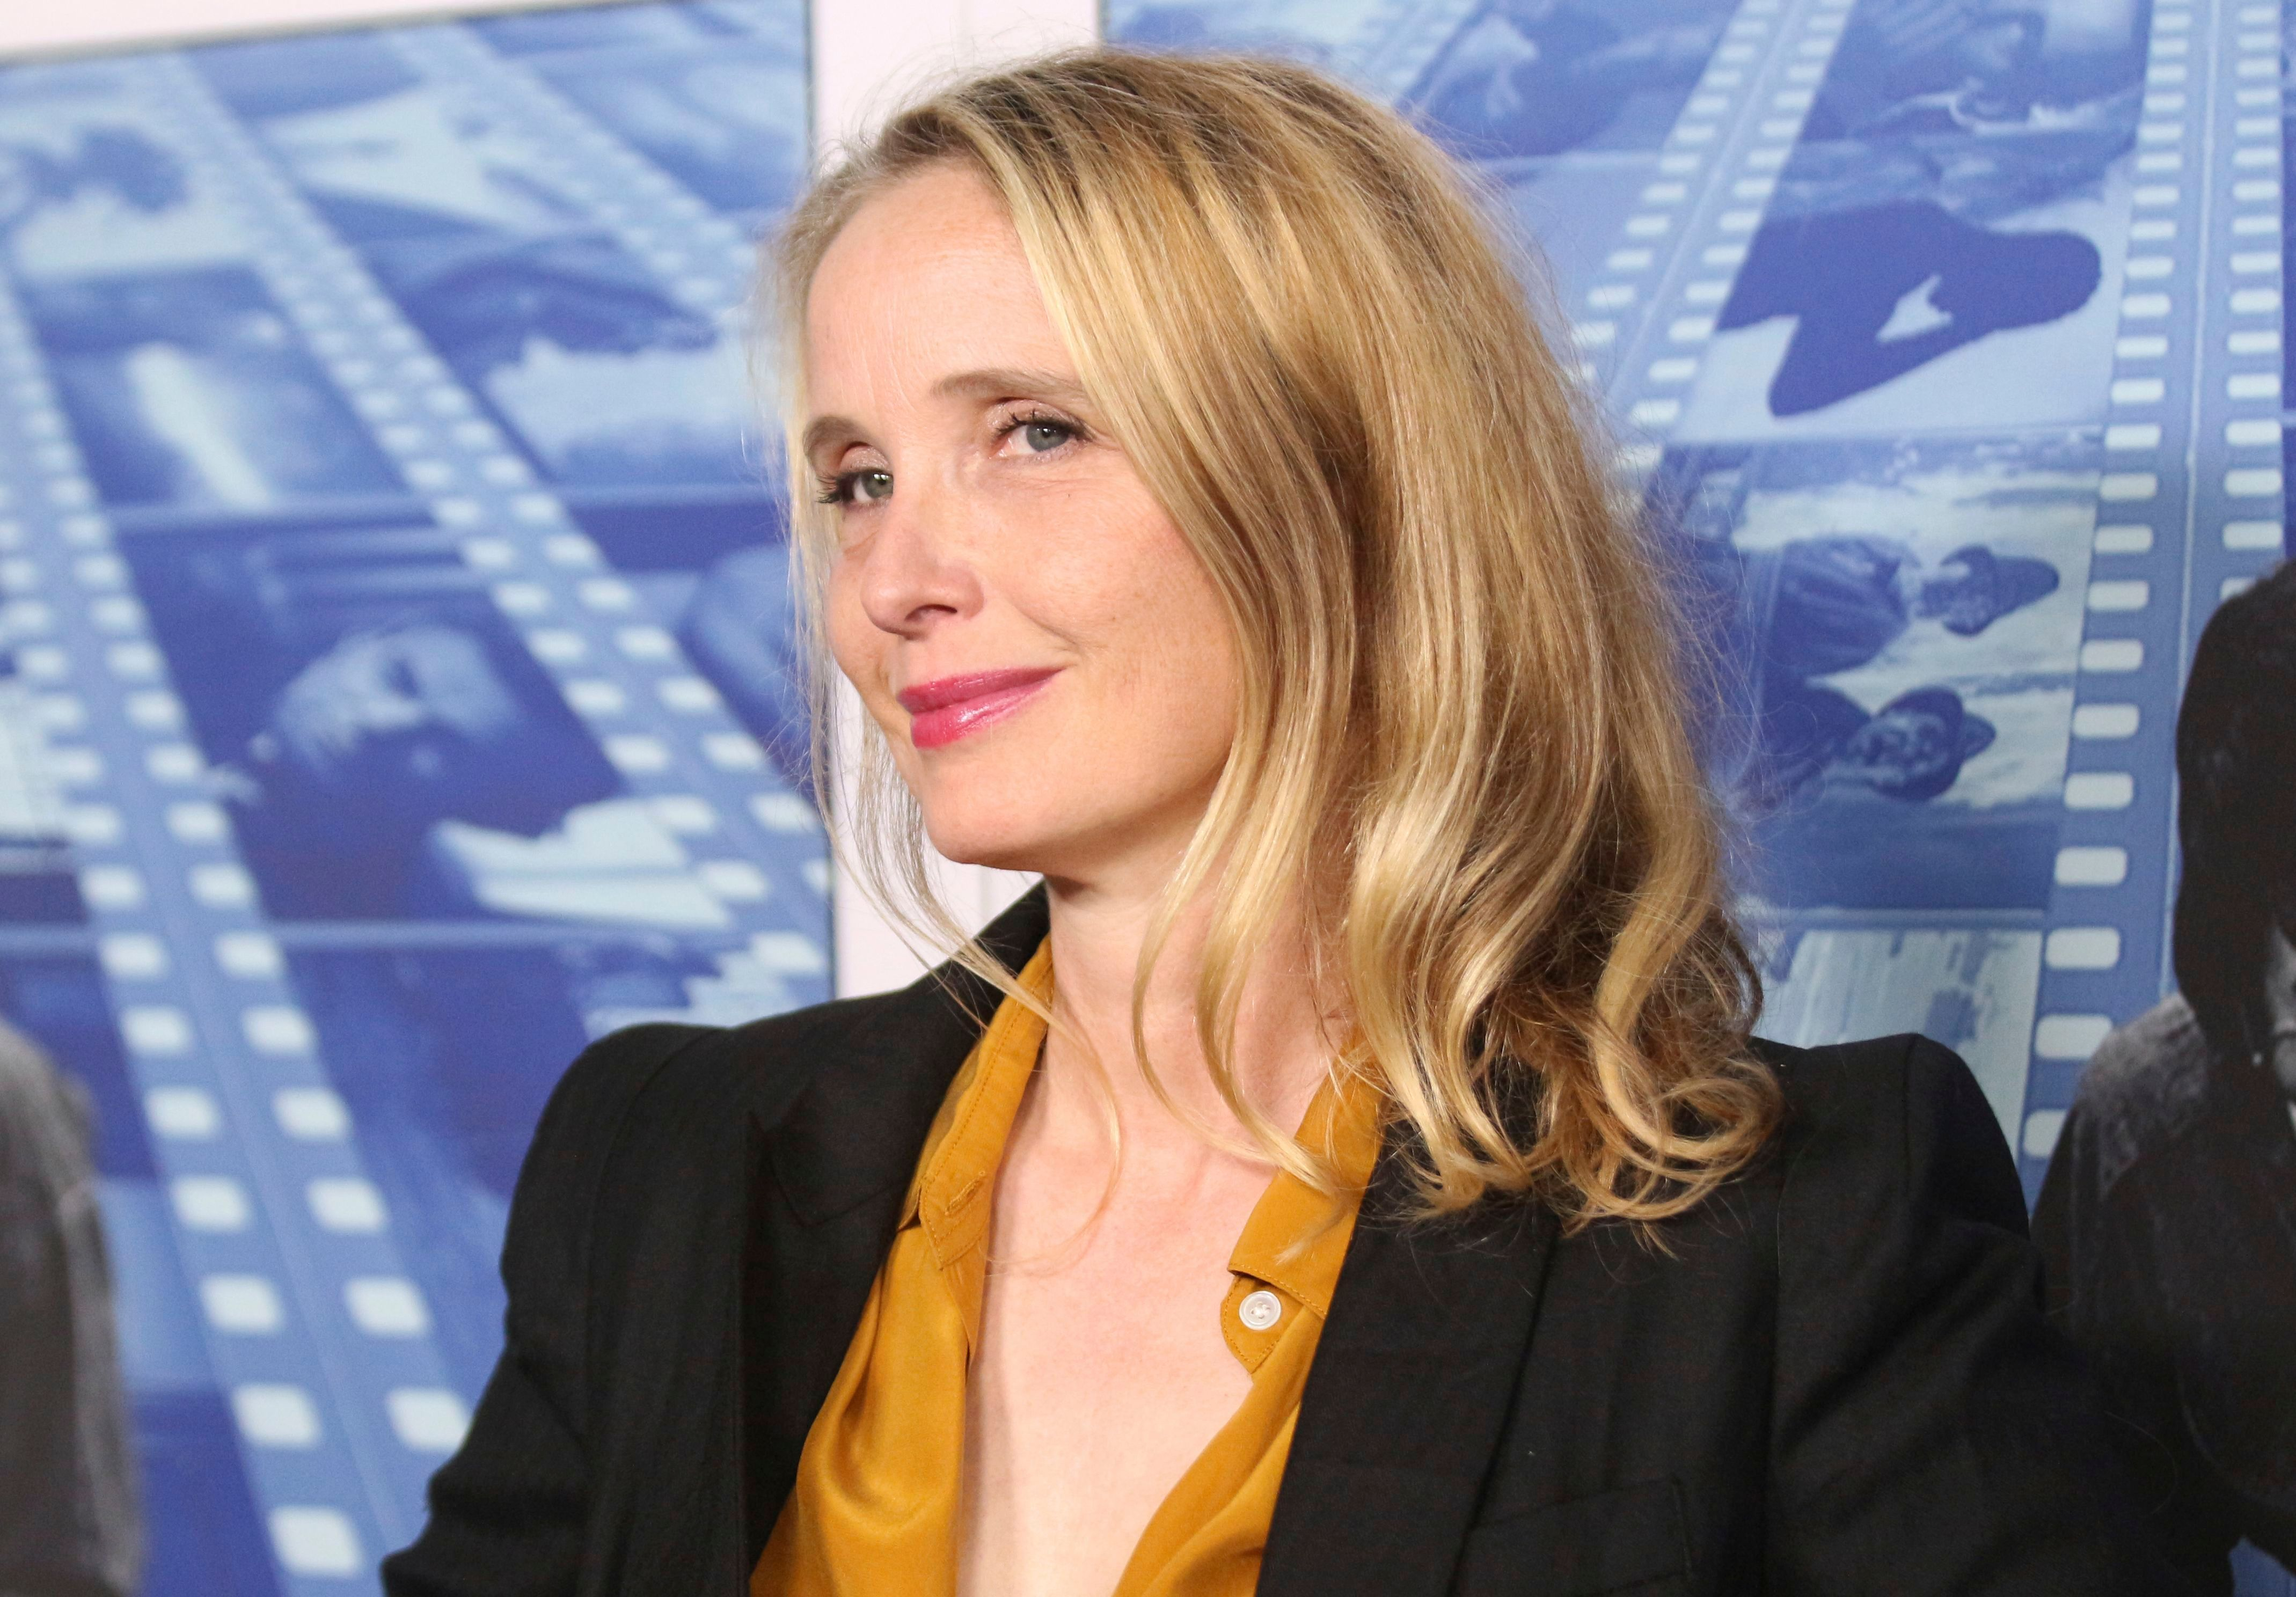 Julie Delpy on Her Most Personal Film, the 'Horrible' Twist That Almost Killed It, and Why Marvel Hasn't Called